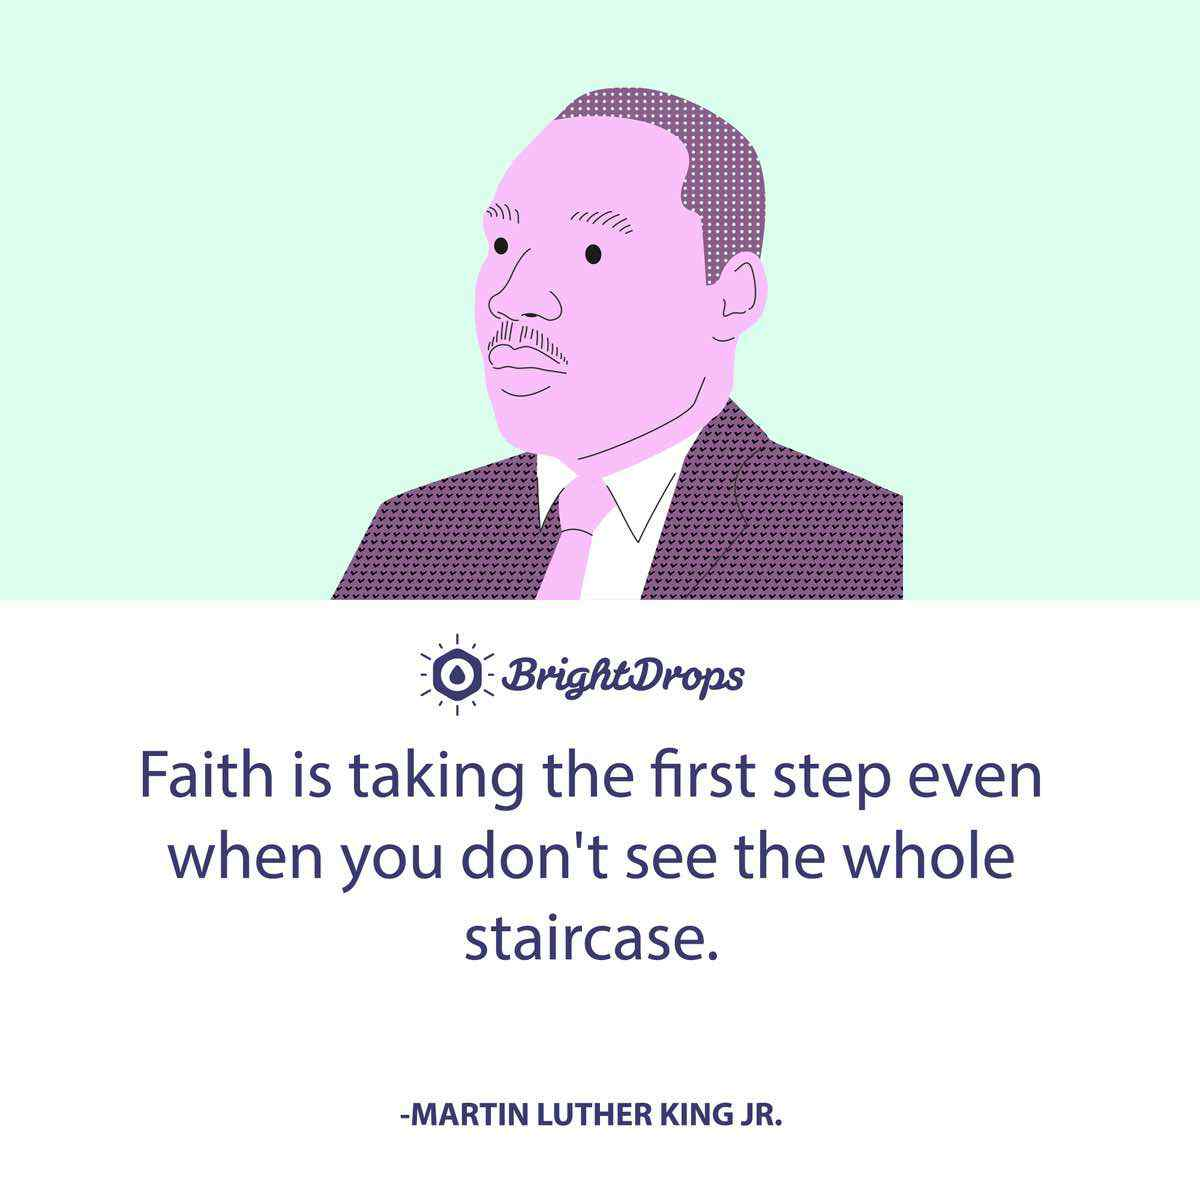 Faith is taking the first step even when you don't see the whole staircase. -Martin Luther King Jr.